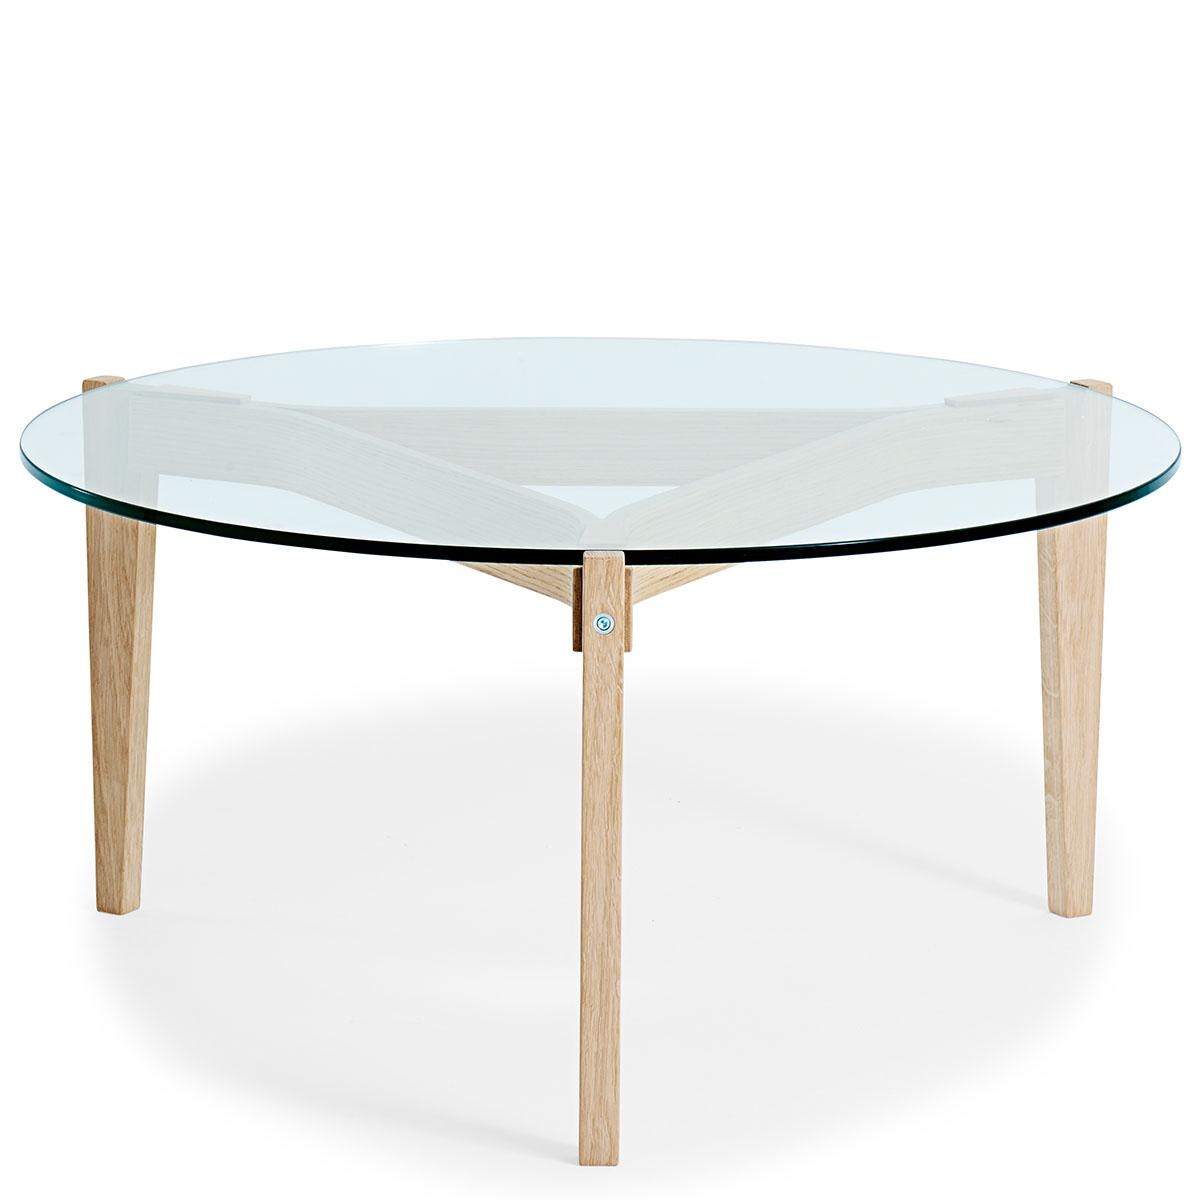 Getama 465 Coffee table _1200_0001_getama_064